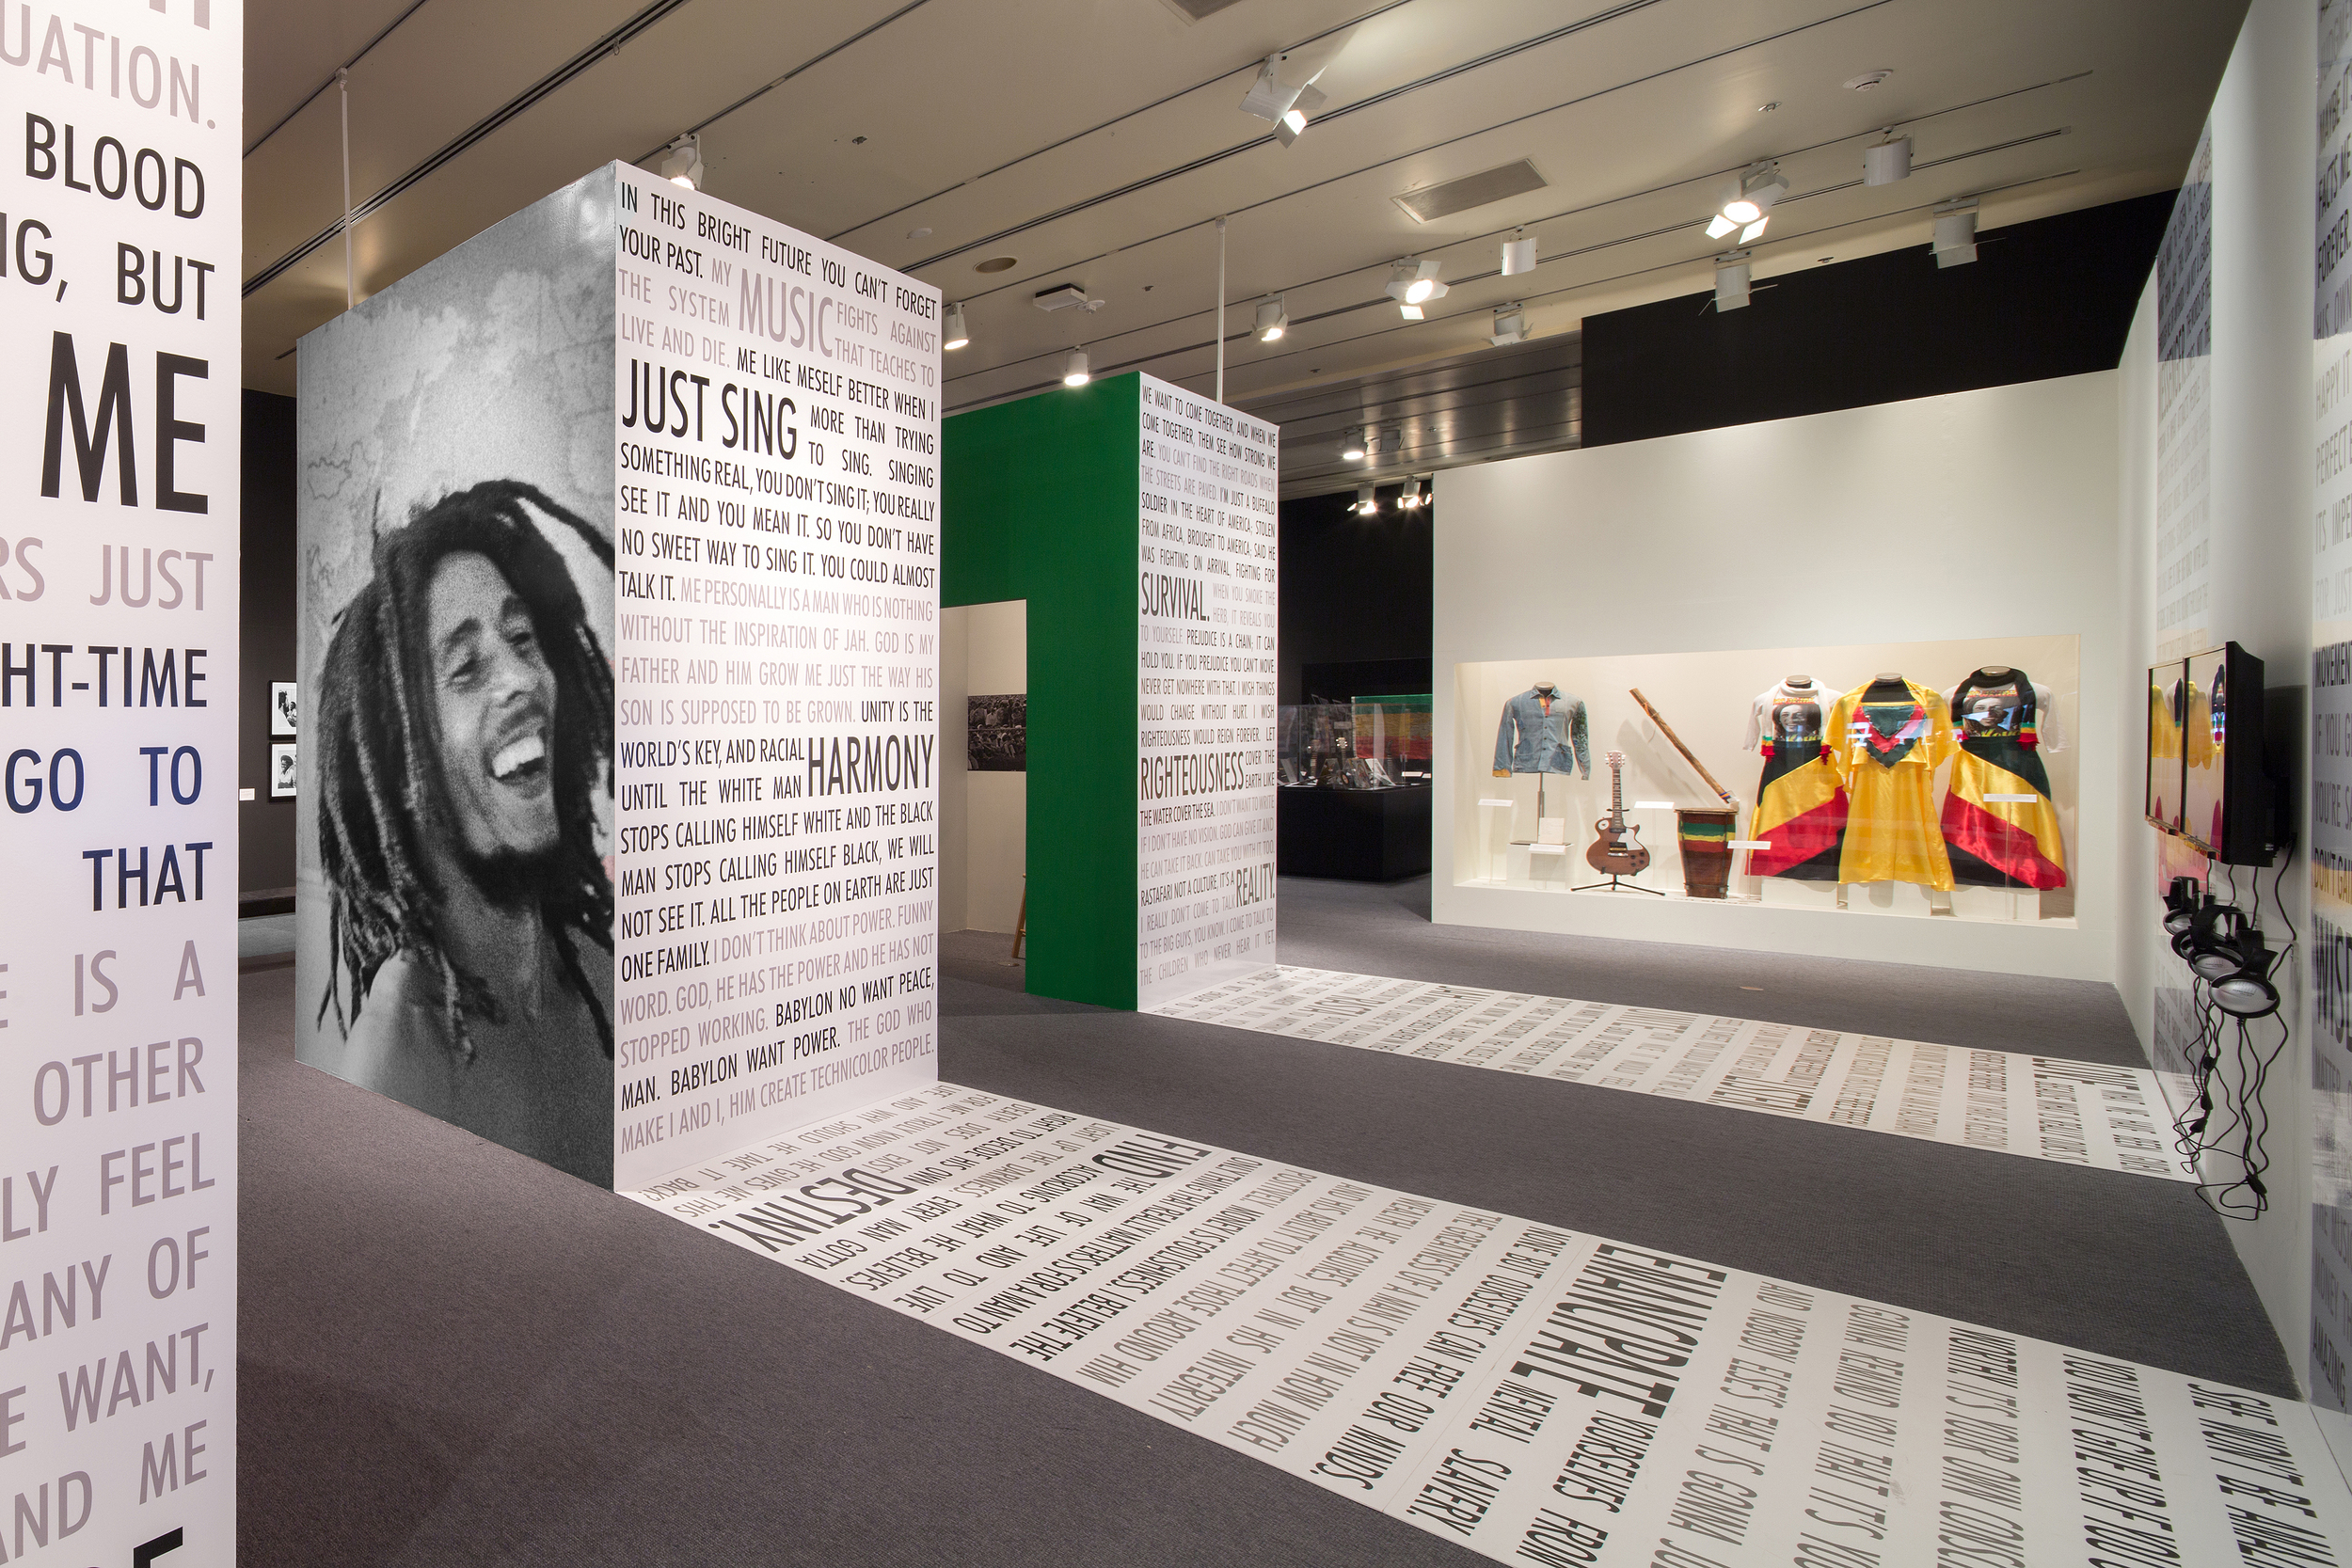 Bob Marley Exhibit at History Miami designed by Shulman + Associates photo by Robin Hill (c) HI RES (7).jpg